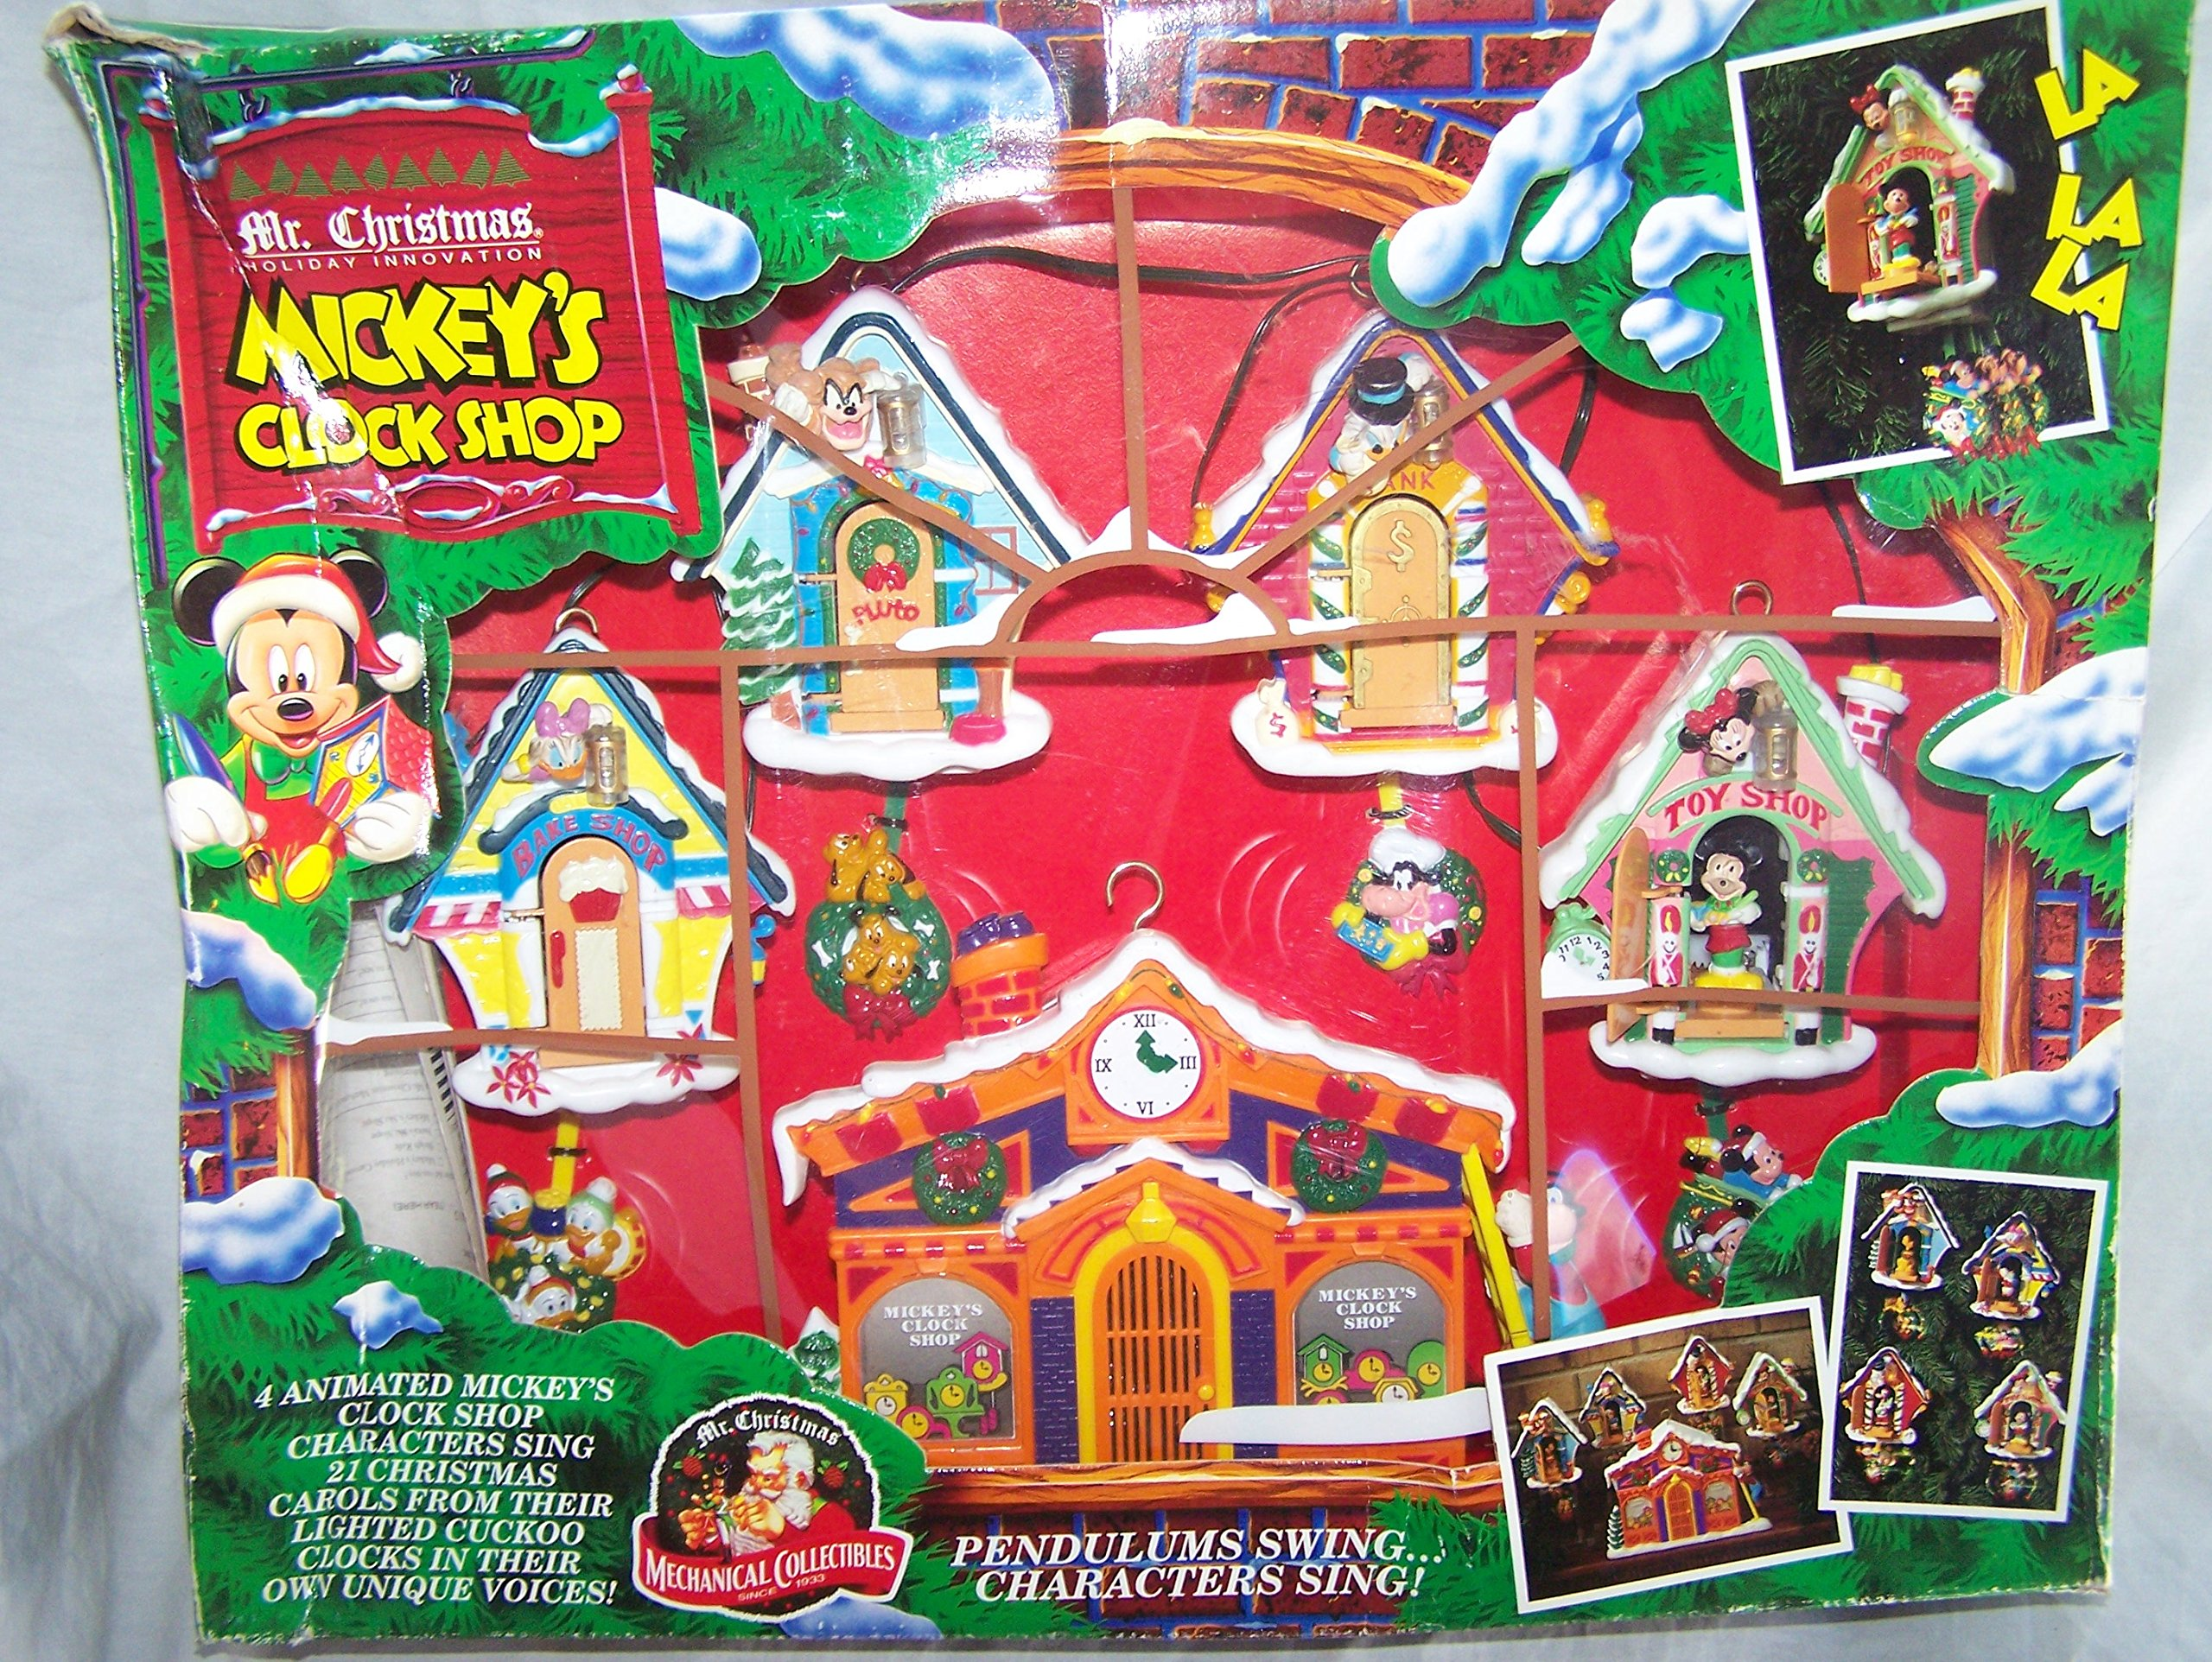 Mr. Christmas Mickey's Clock Shop by Mr. Christmas by Mr. Christmas